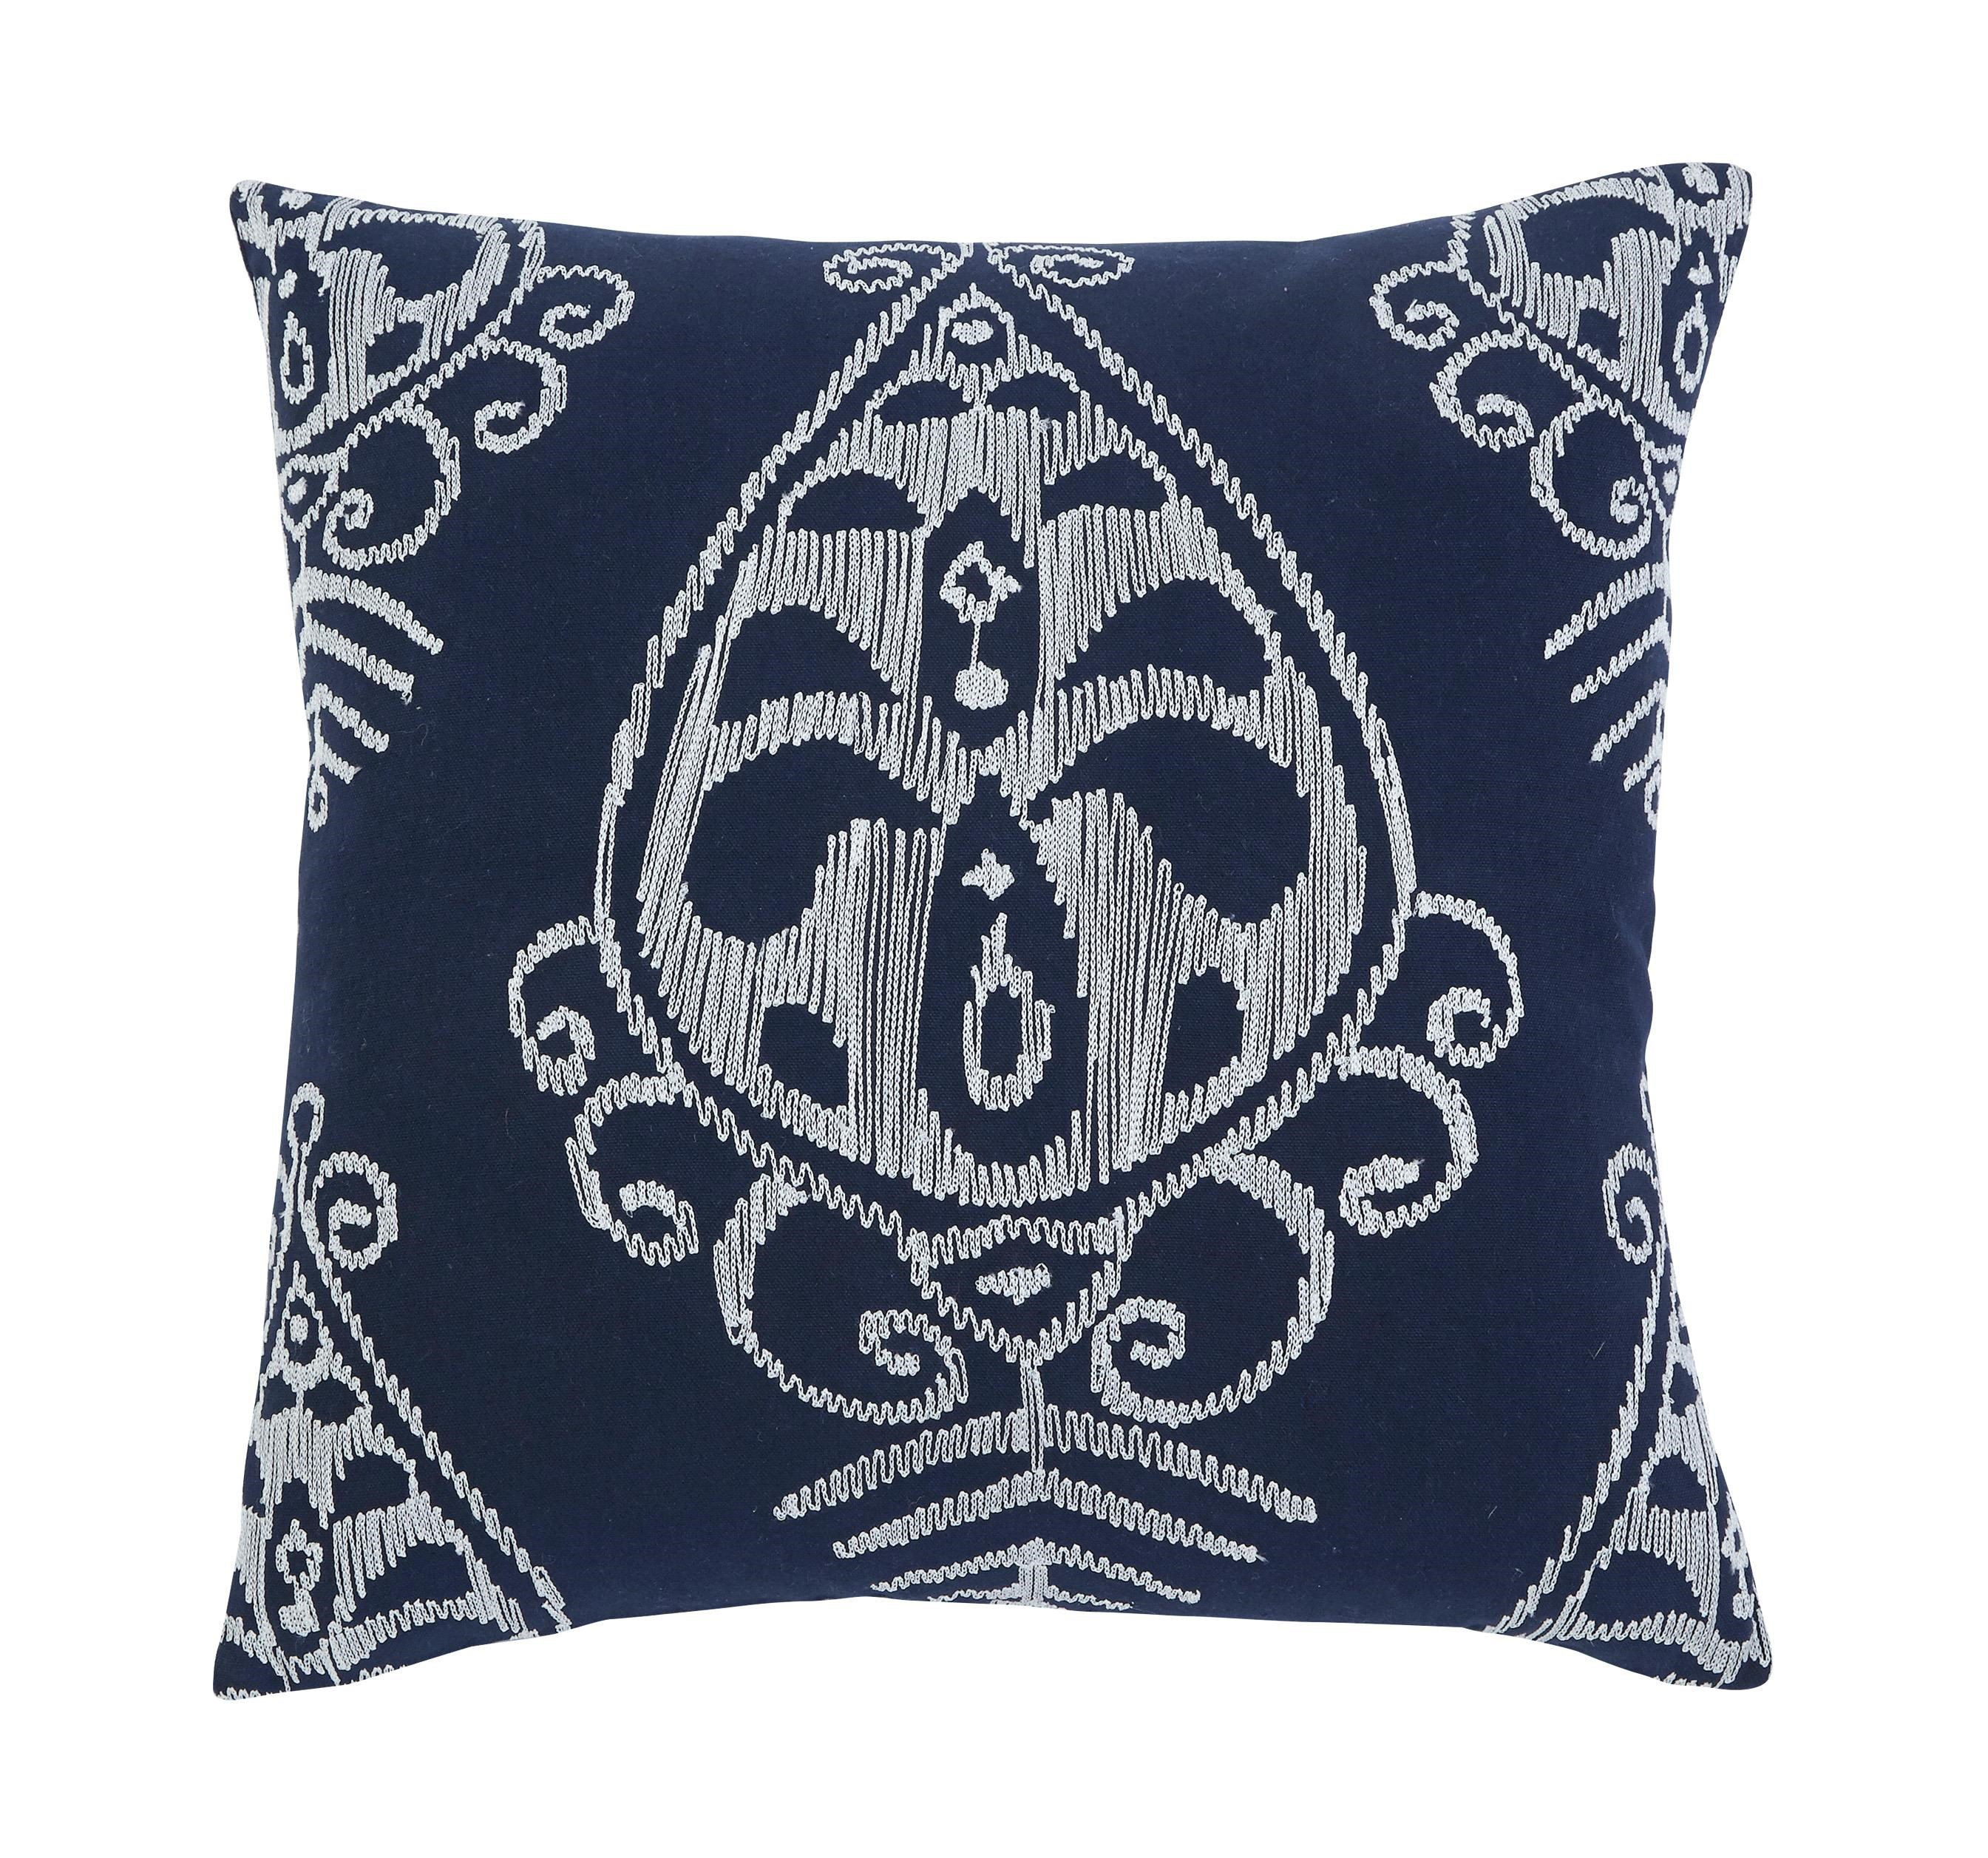 Signature Design by Ashley Pillows Embroidered - Navy Pillow Cover - Dream Home Furniture ...